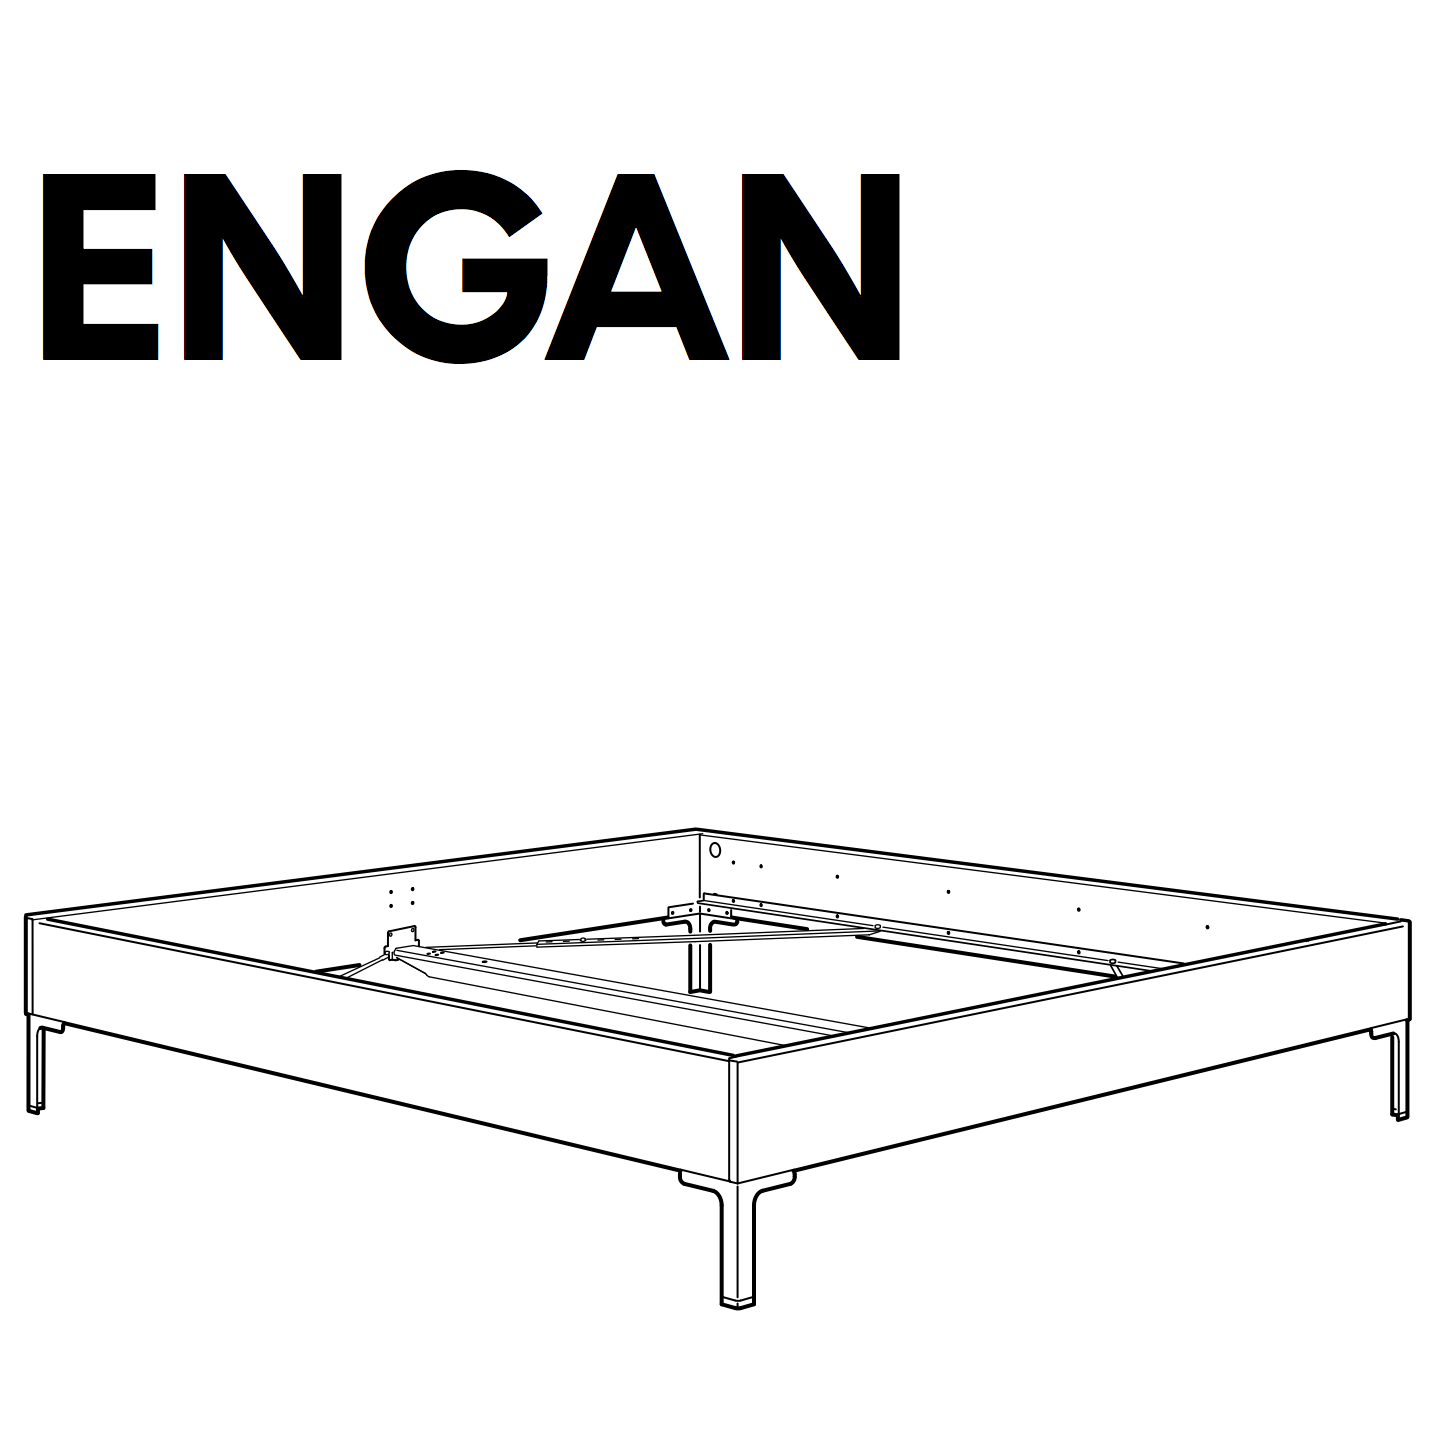 ENGAN Bedframe Replacement Parts – FurnitureParts.com